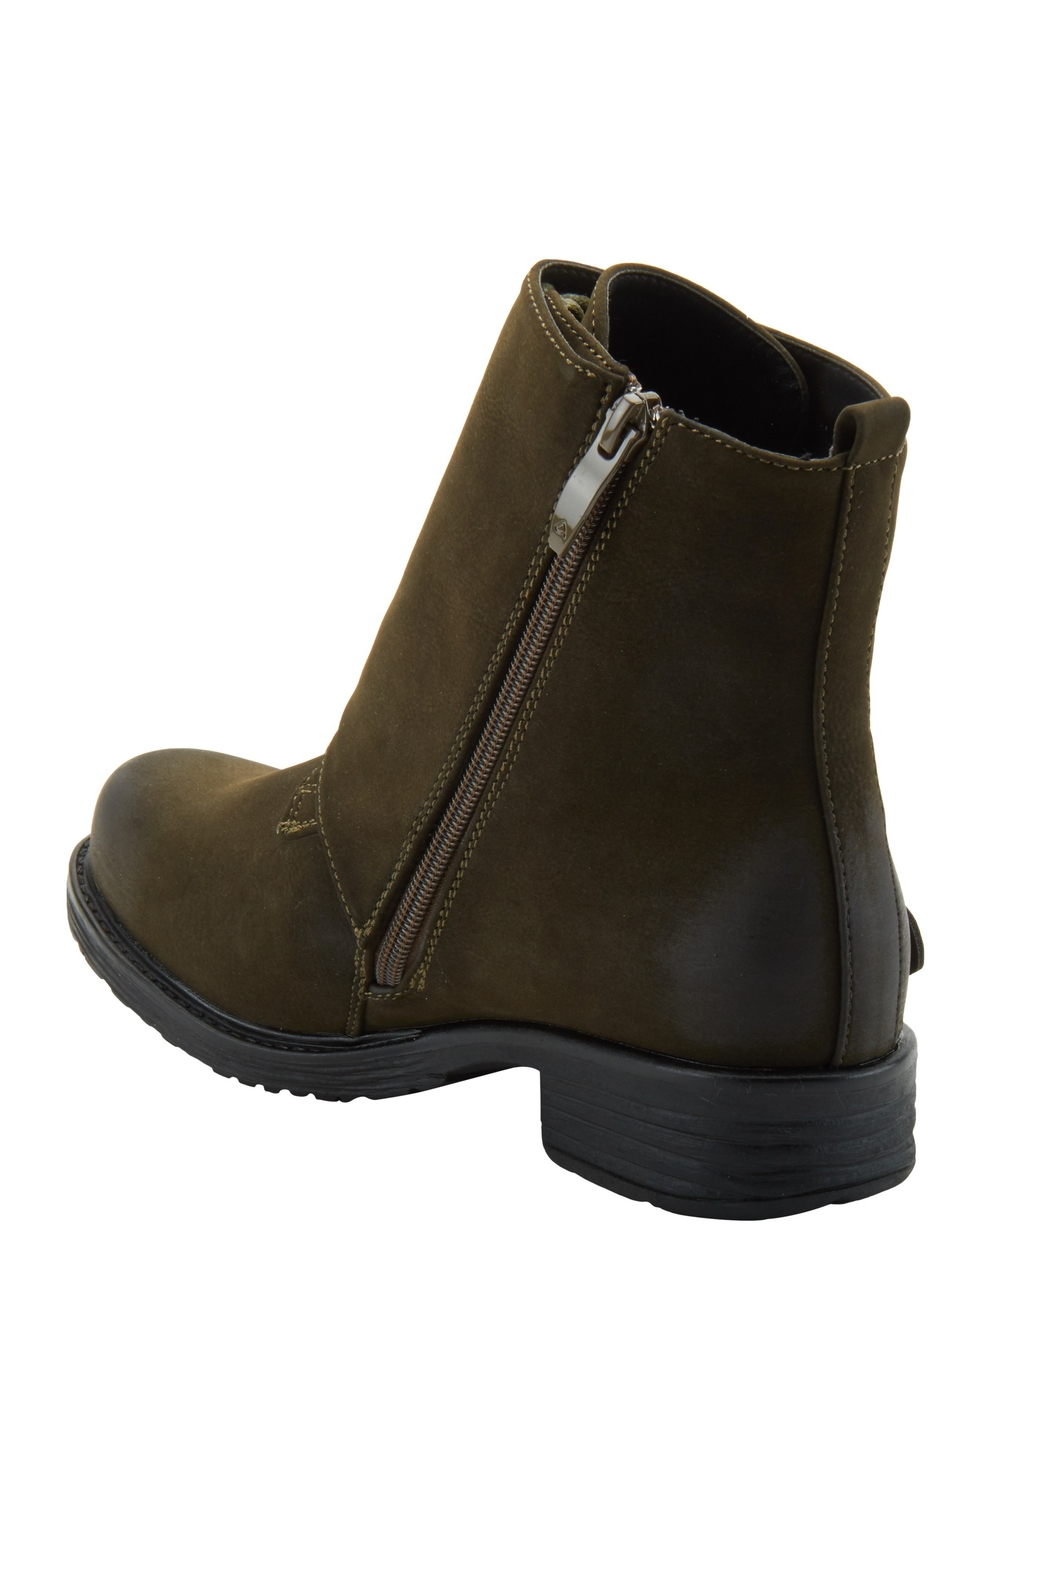 Spring Footwear Billie Joe Bootie - Side Cropped Image